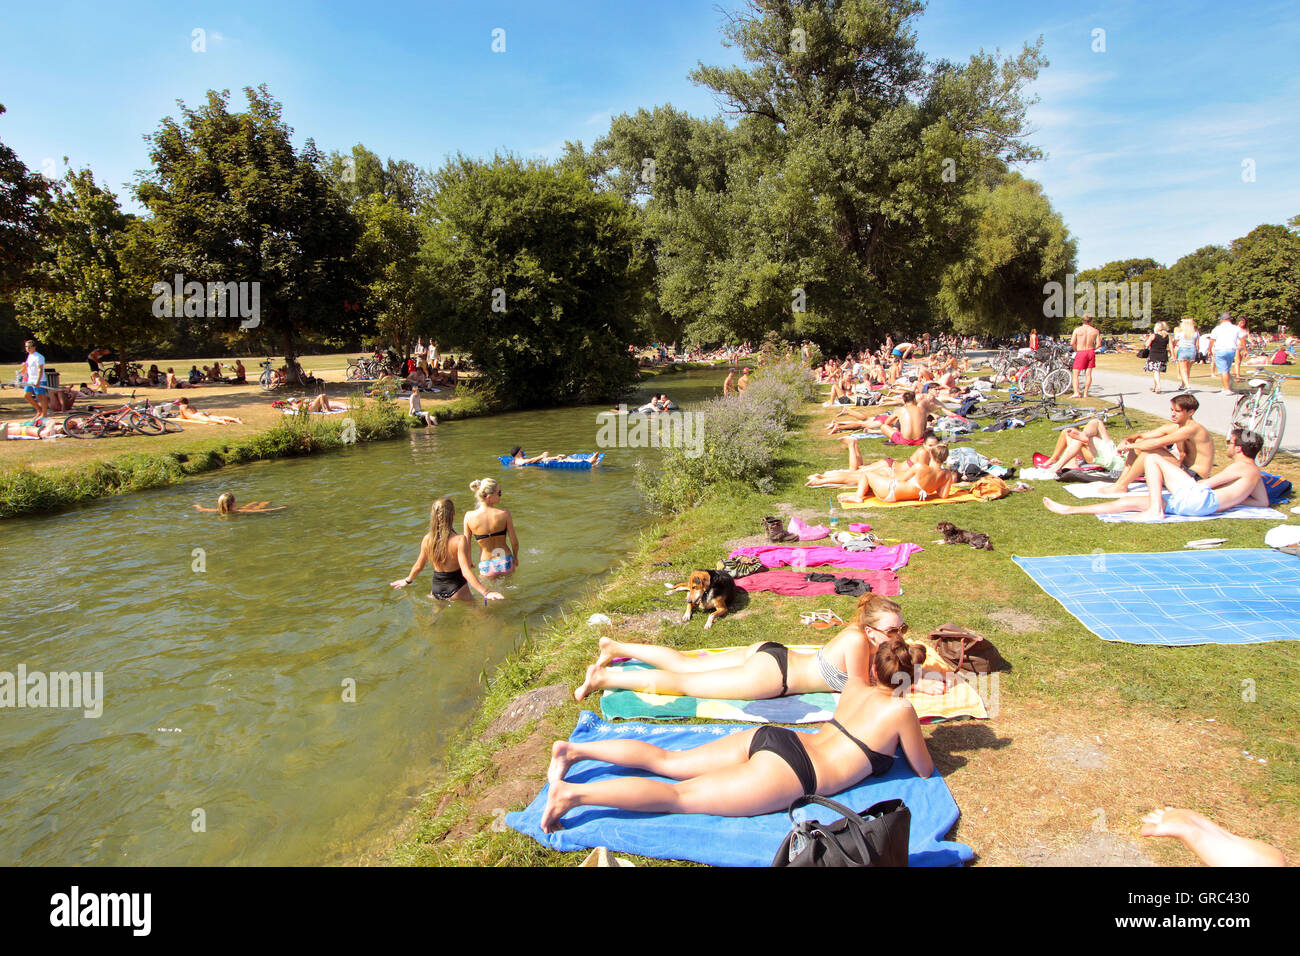 Crowded Lawn During Heat Wave At Englischer Garten In Munich - Stock Image